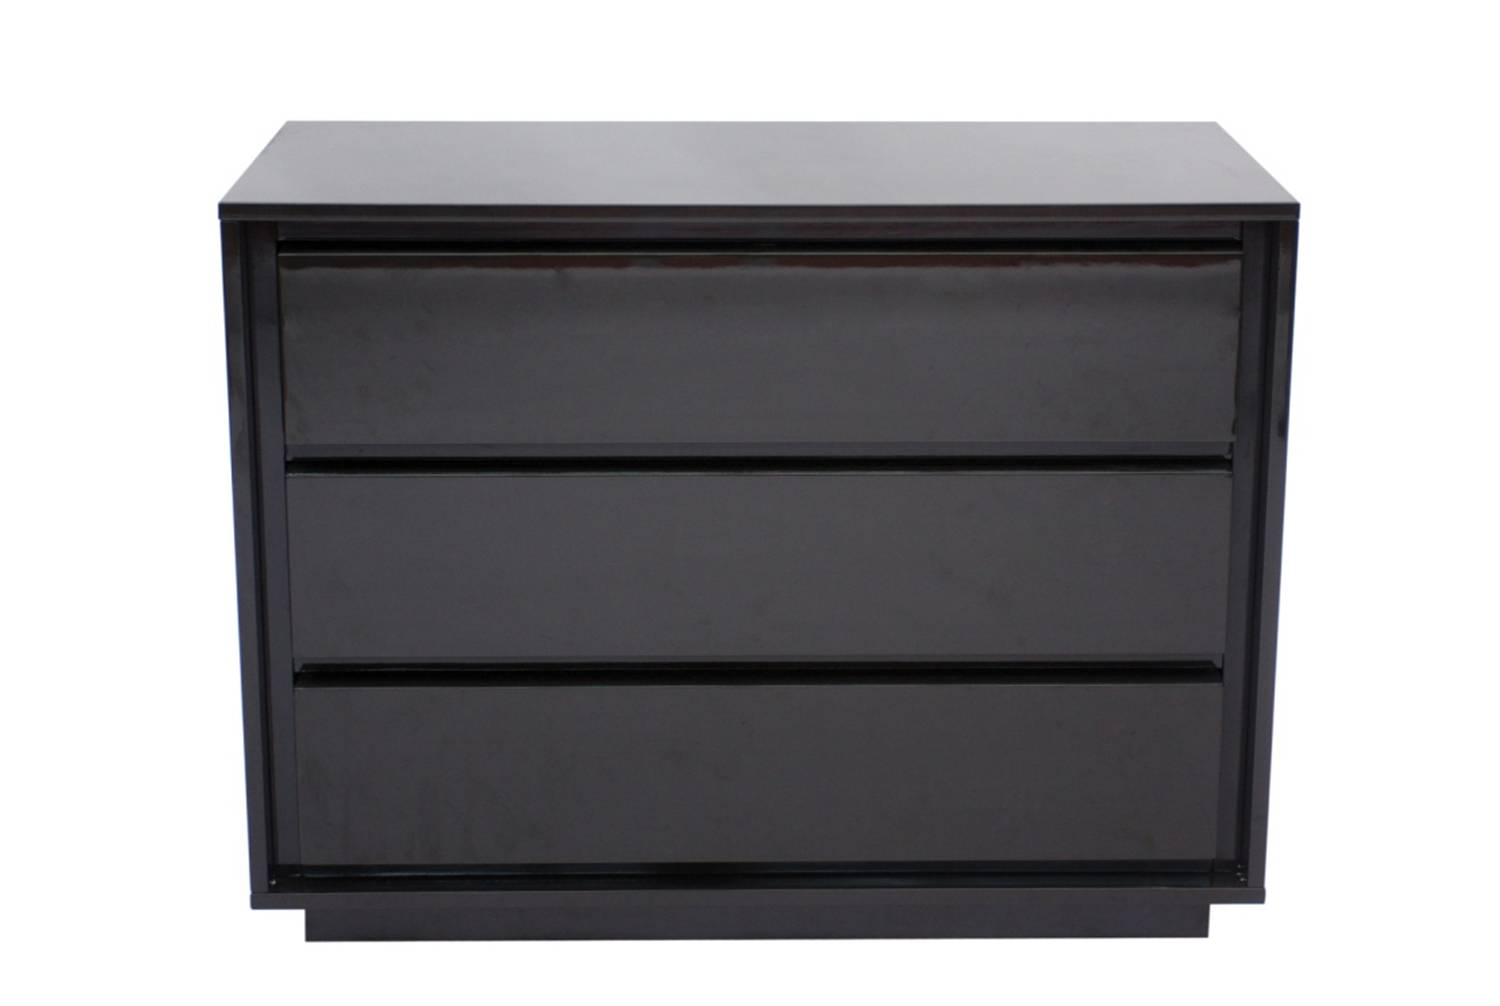 Madrid Chest of Drawers - Charcoal